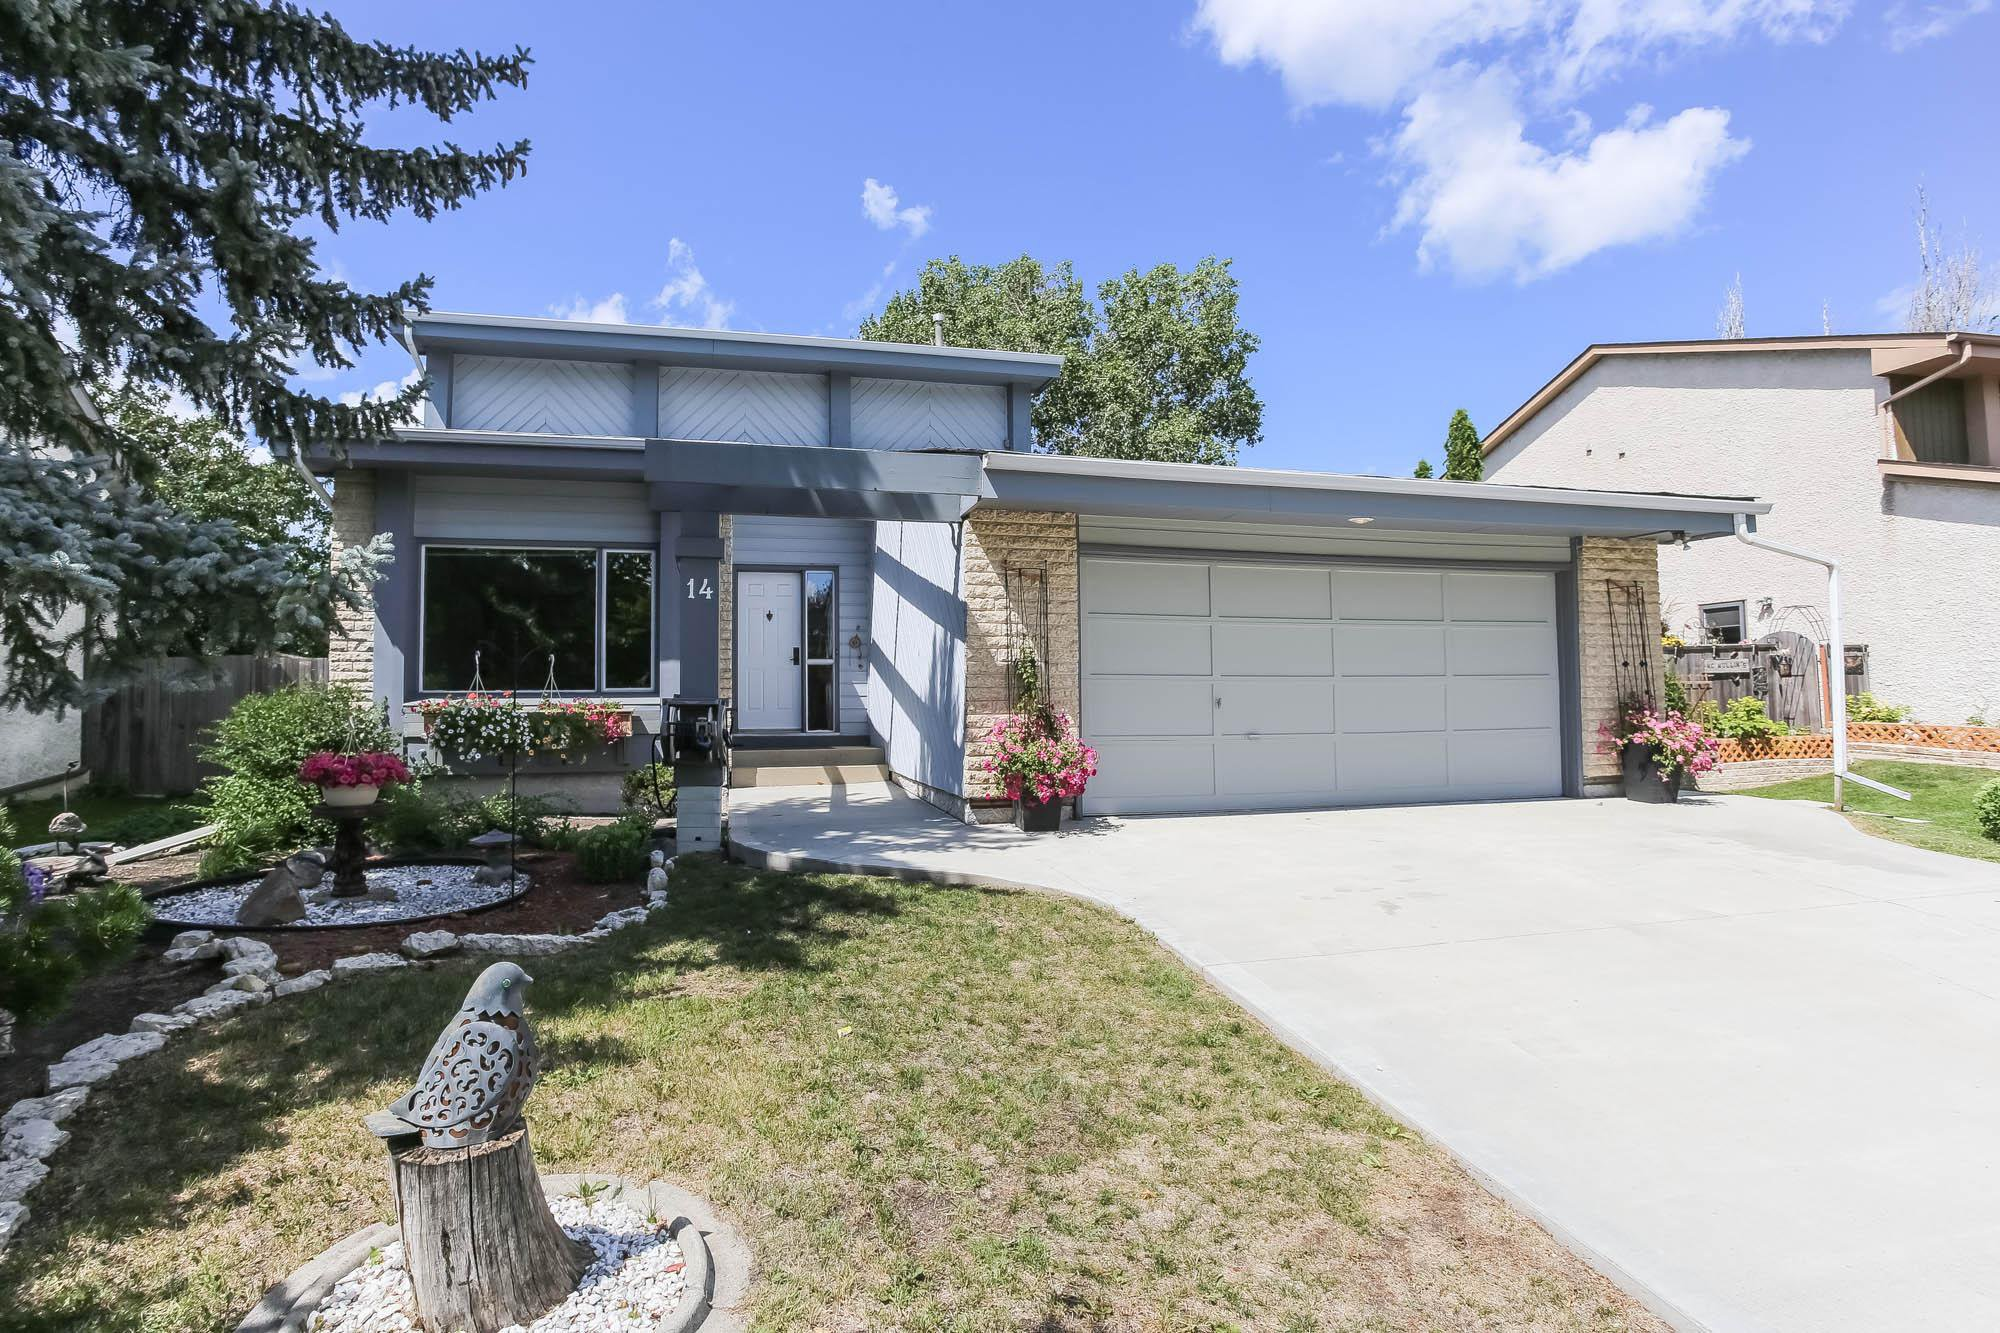 Photo 35: Photos: 14 Torrington Road in Winnipeg: Whyte Ridge Single Family Detached for sale (1P)  : MLS®# 202017383